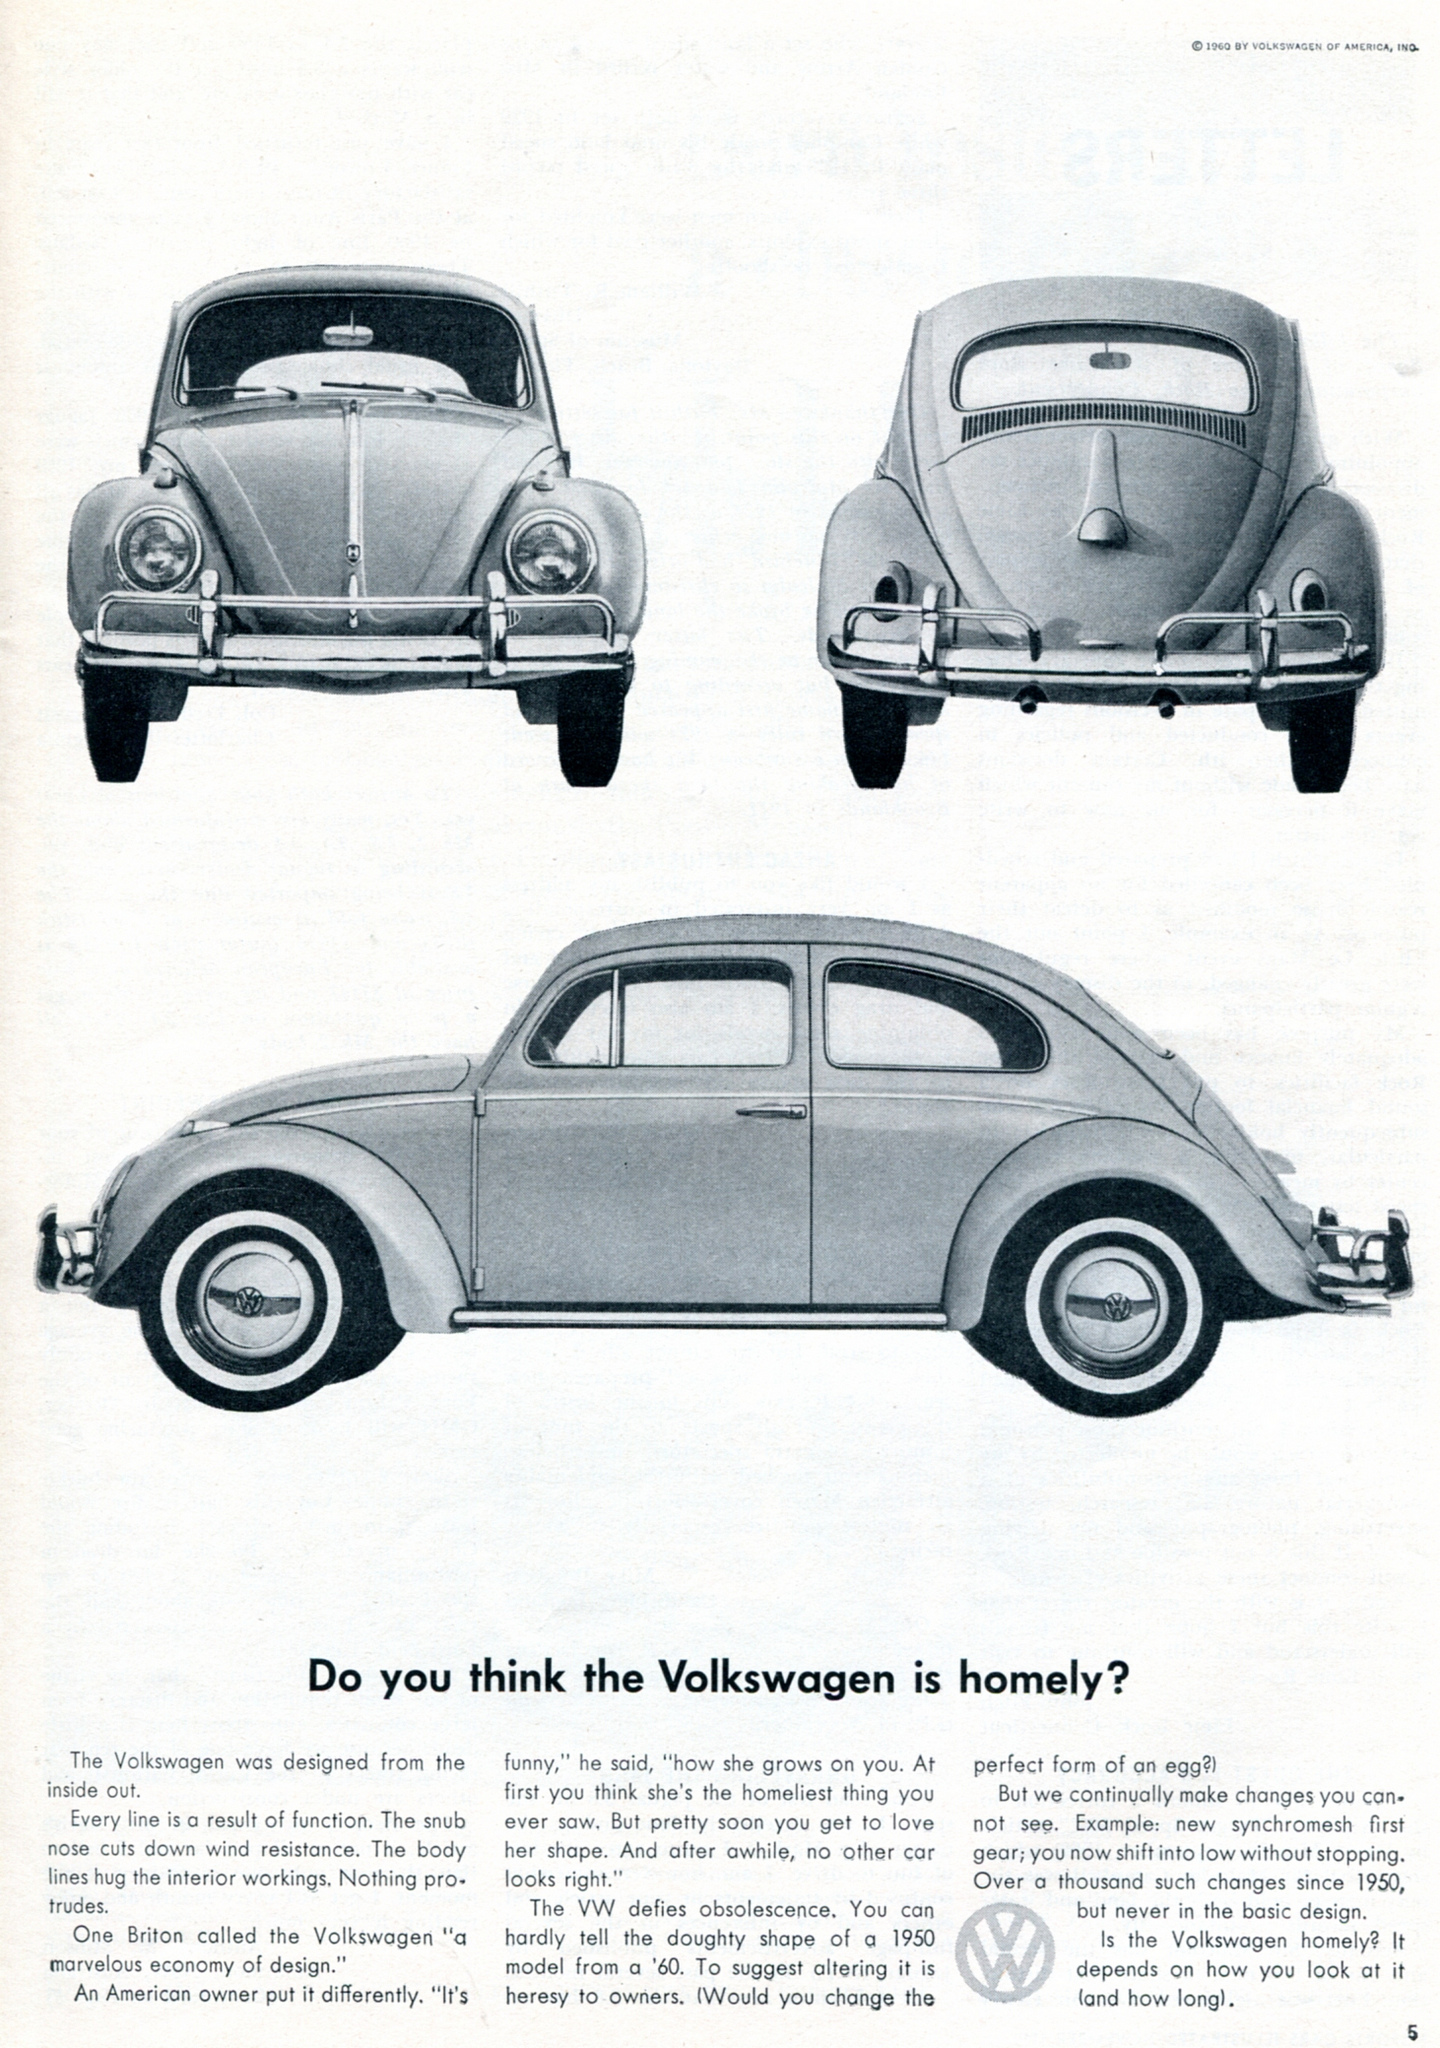 Volkswagen Of America Ads 196066 Fonts In Use 1960 Beetle Interior Sports Car Illustrated Nov